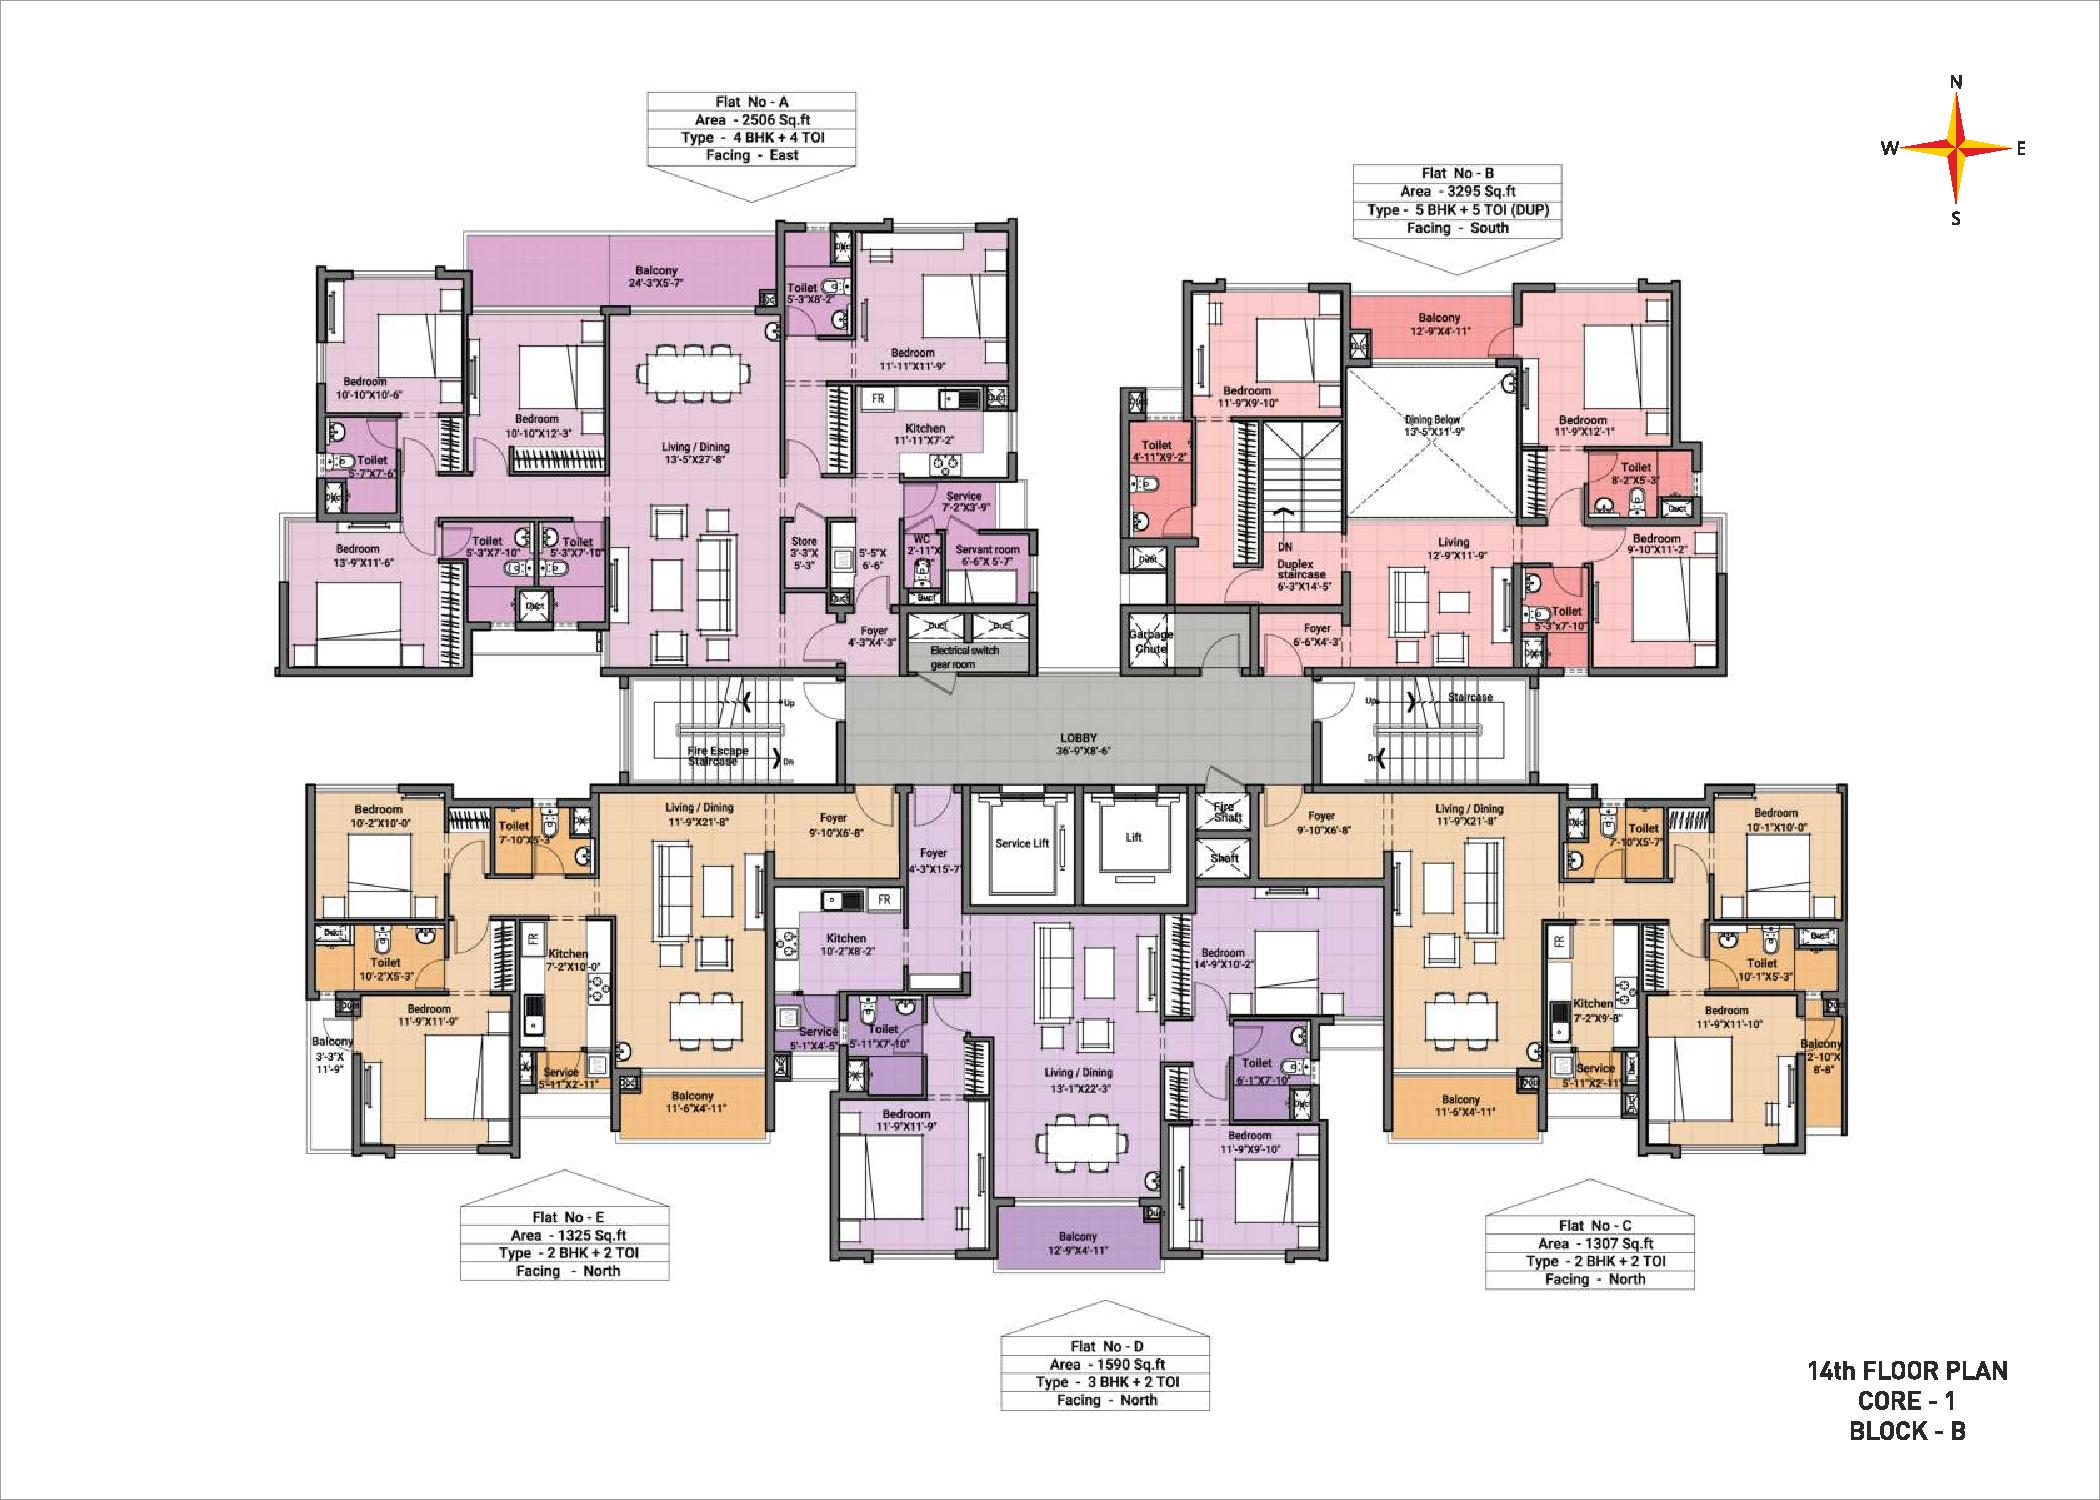 14th Floor plan Block B Core 1